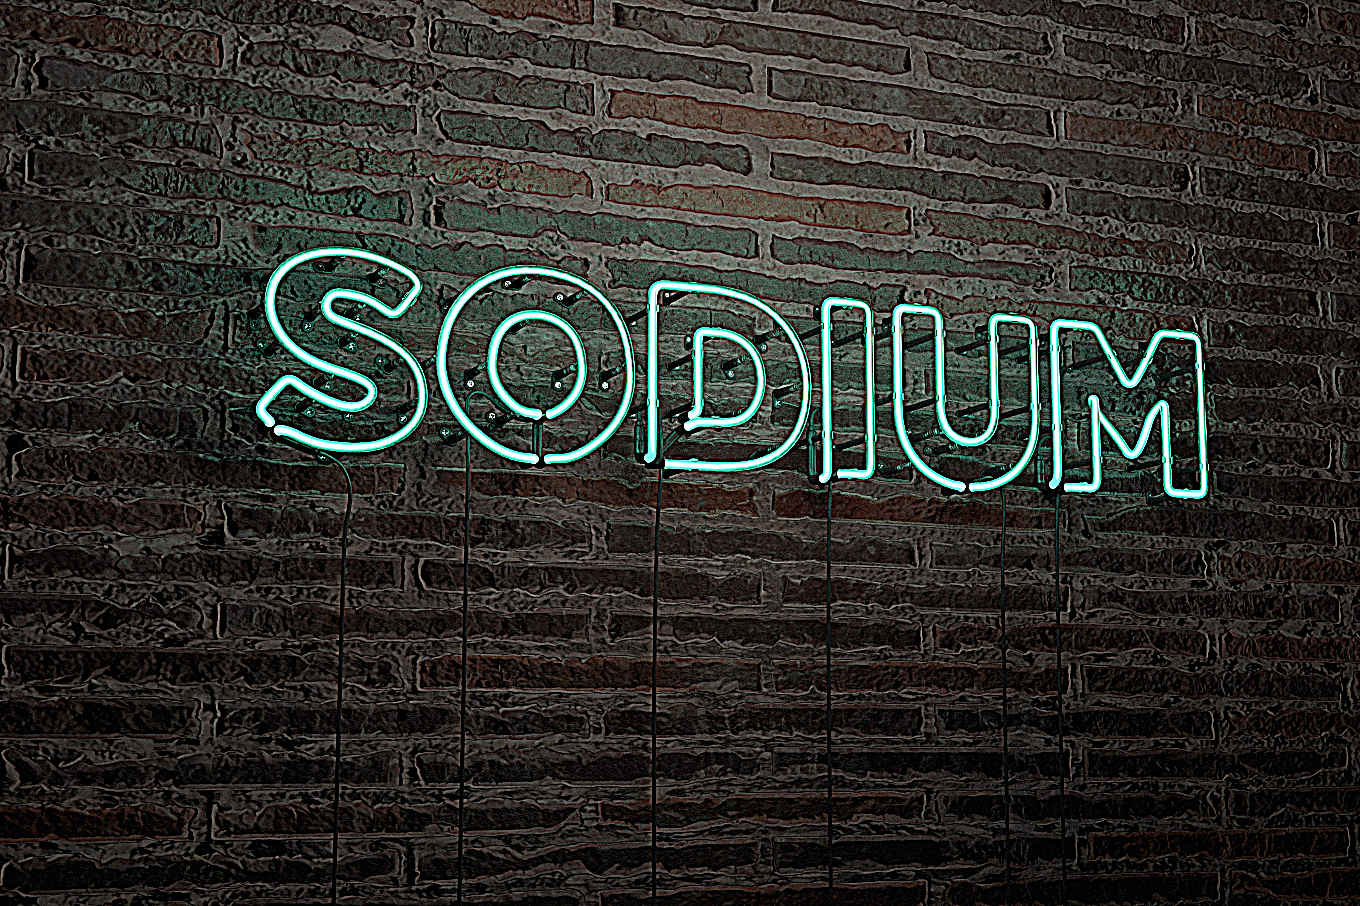 Sodium: Yes, it's a big deal